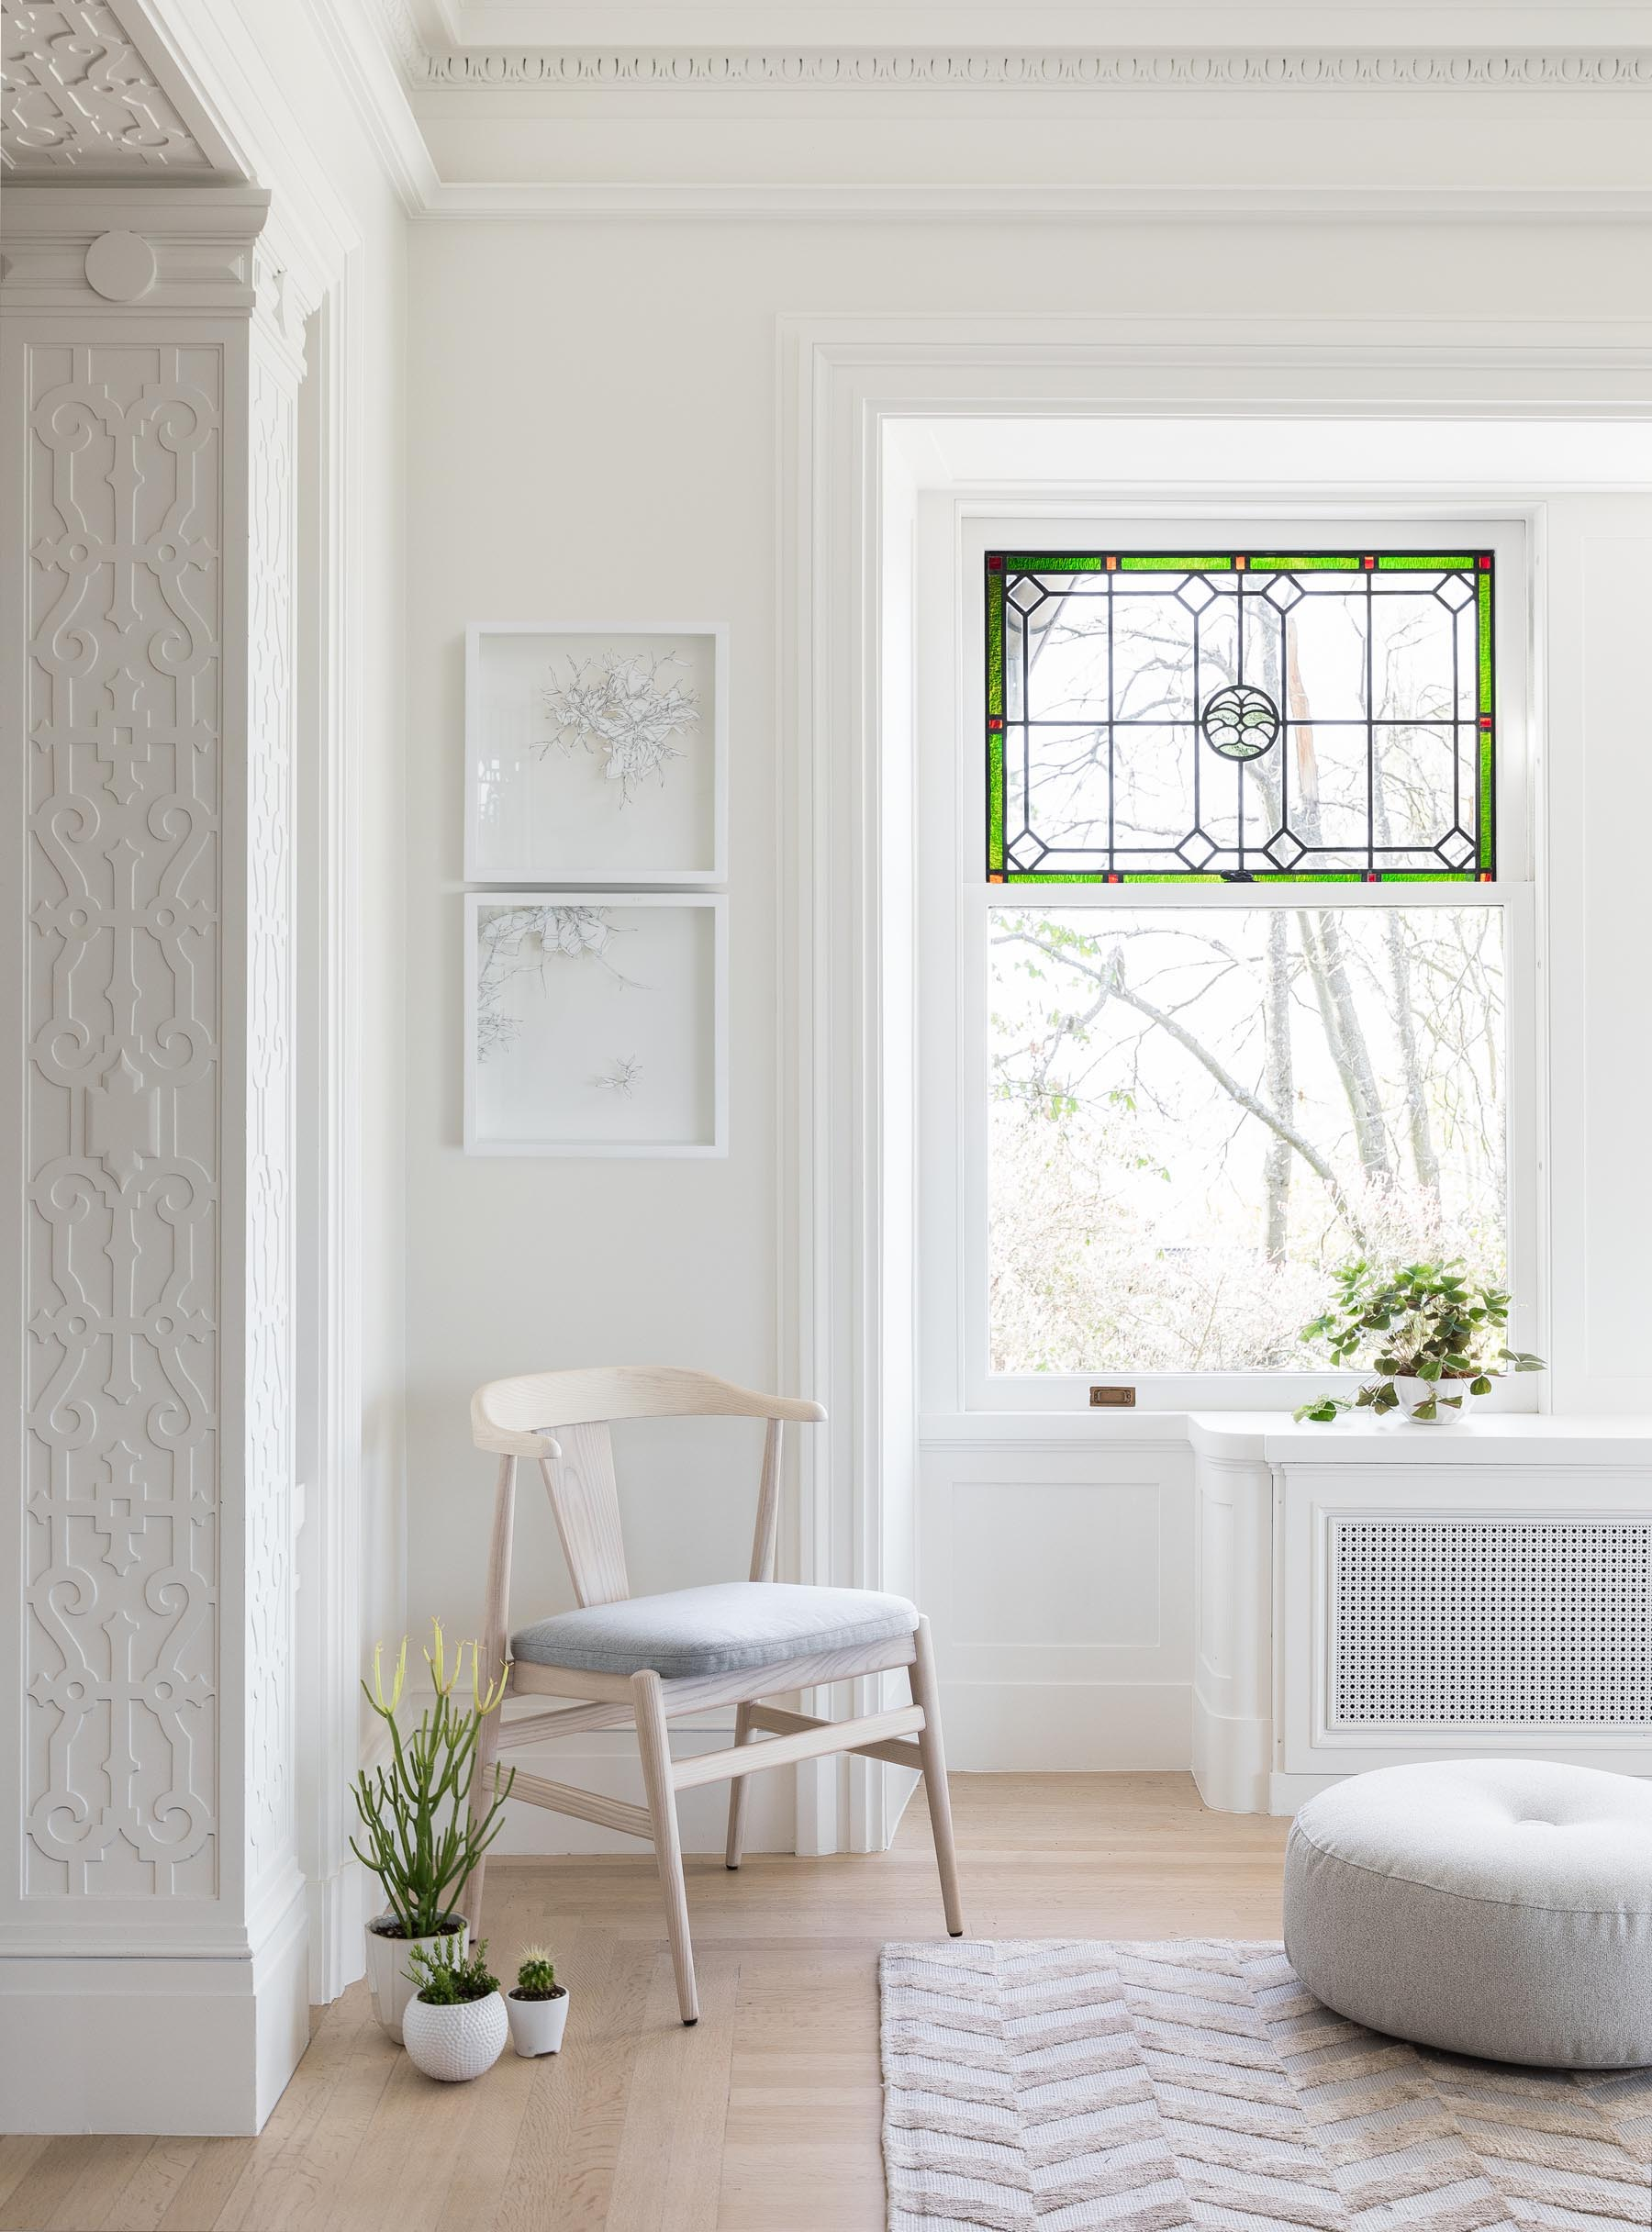 Stained glass windows provide the mostly white interior a pop of color, while light wood and gray tones are used in the furniture choices.